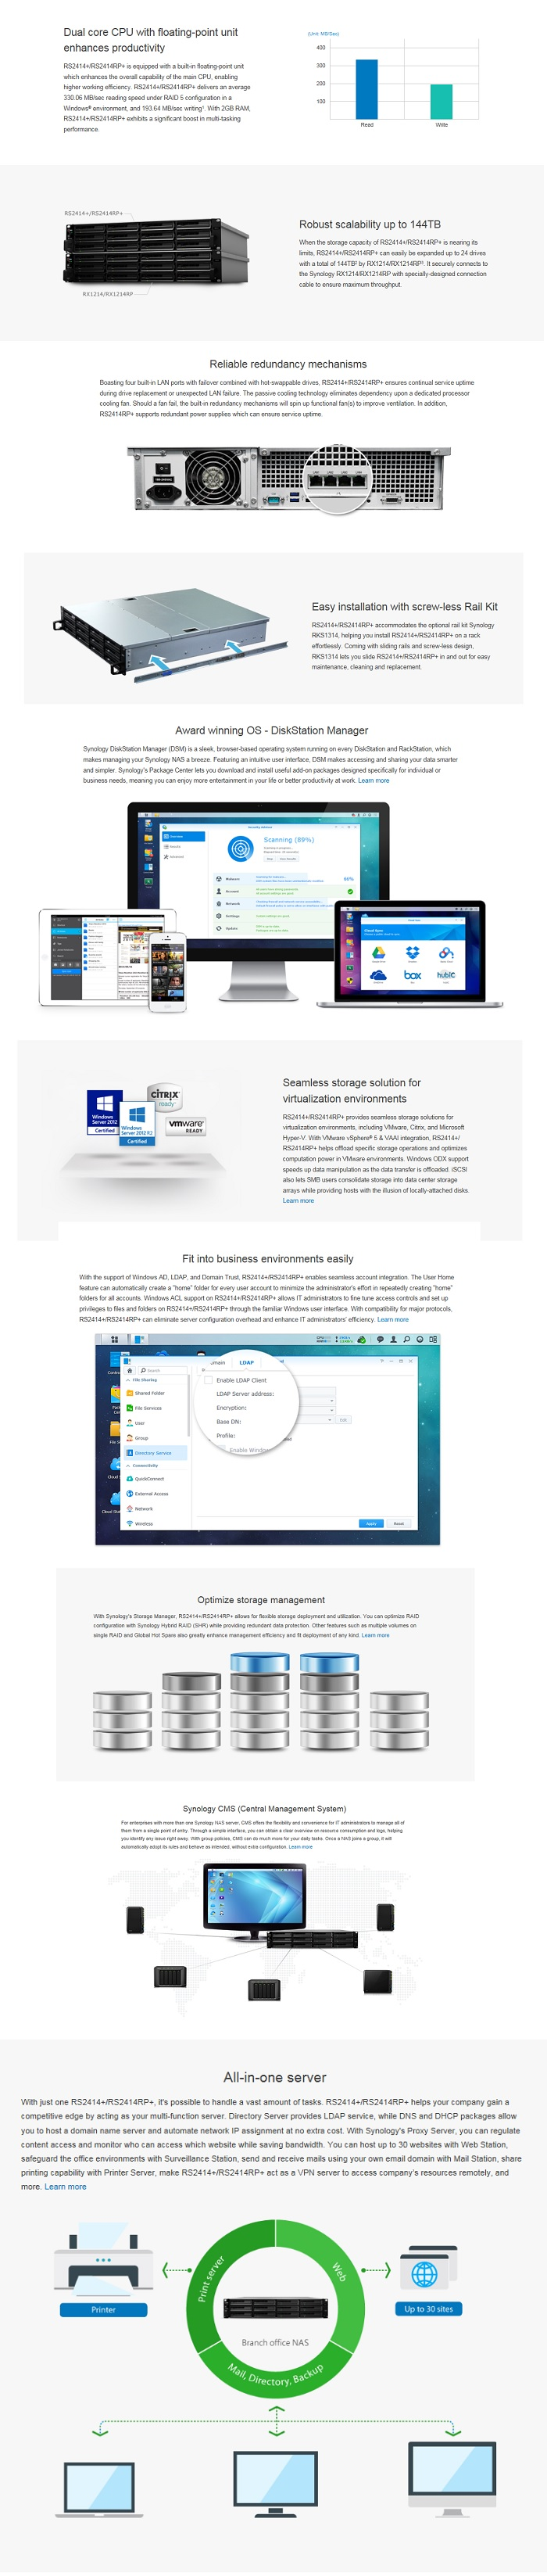 Synology RS2414+.jpg feature